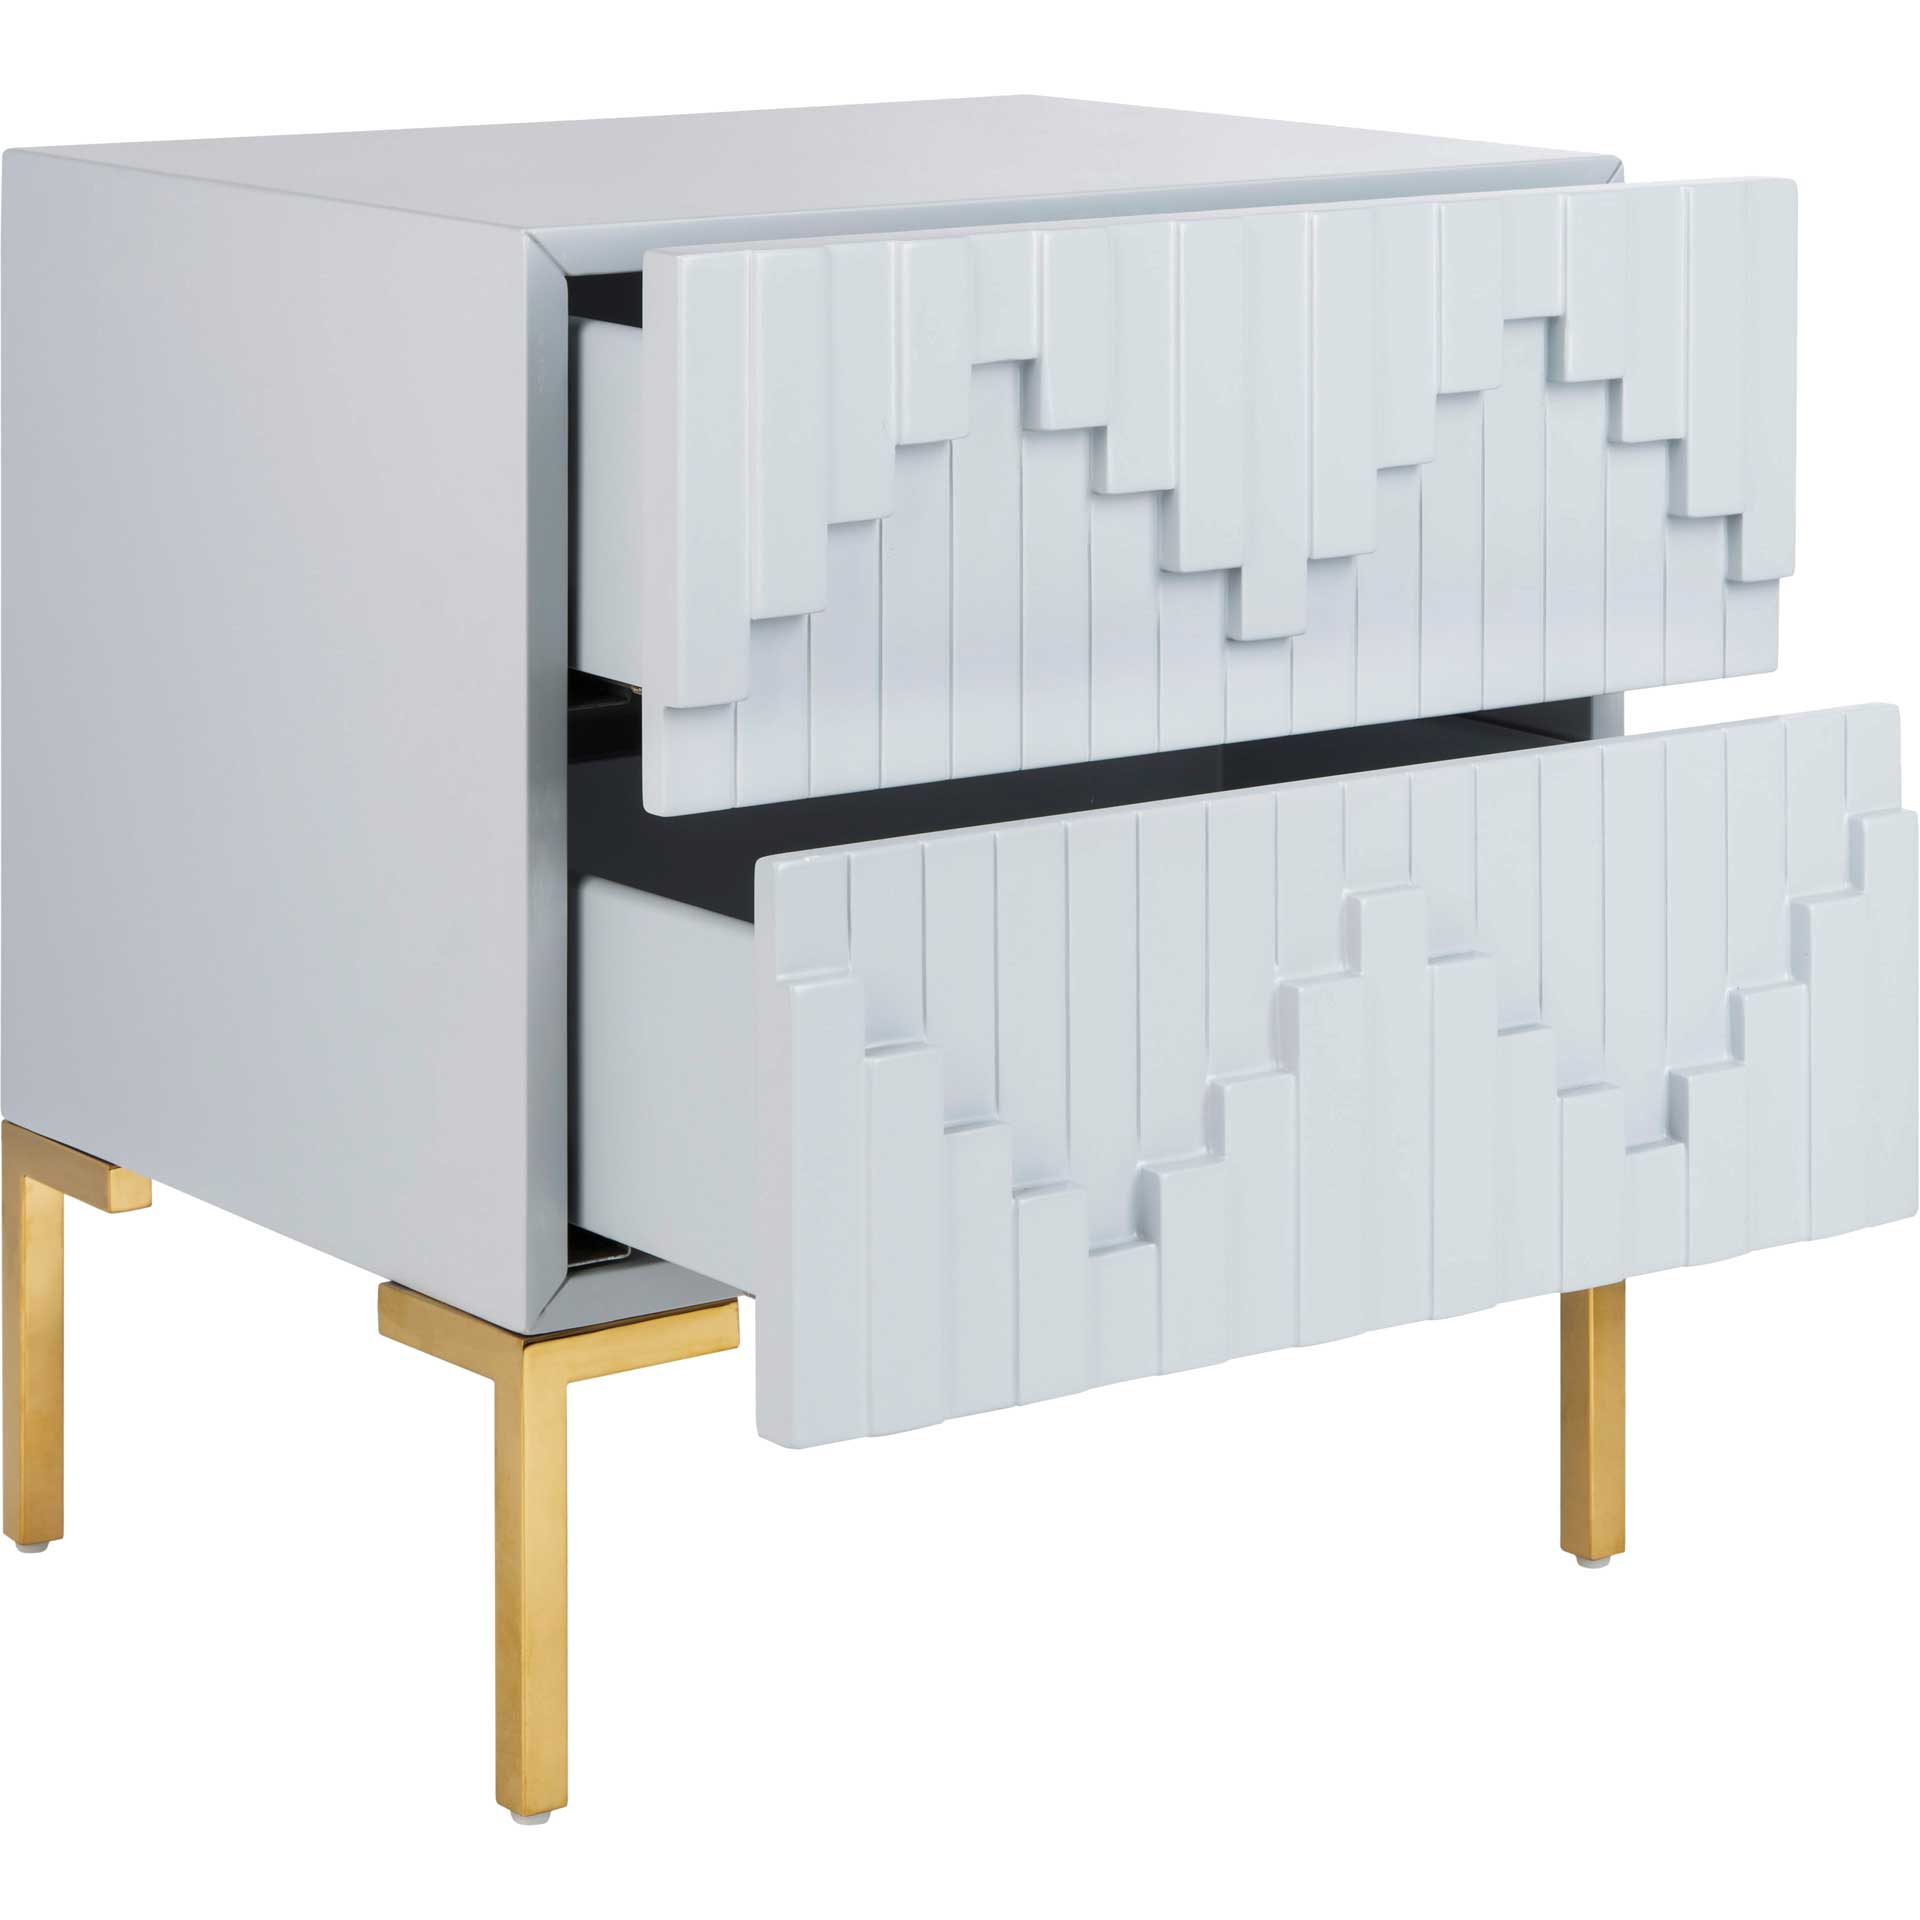 Alana Zigzag Side Table Gray/Gold